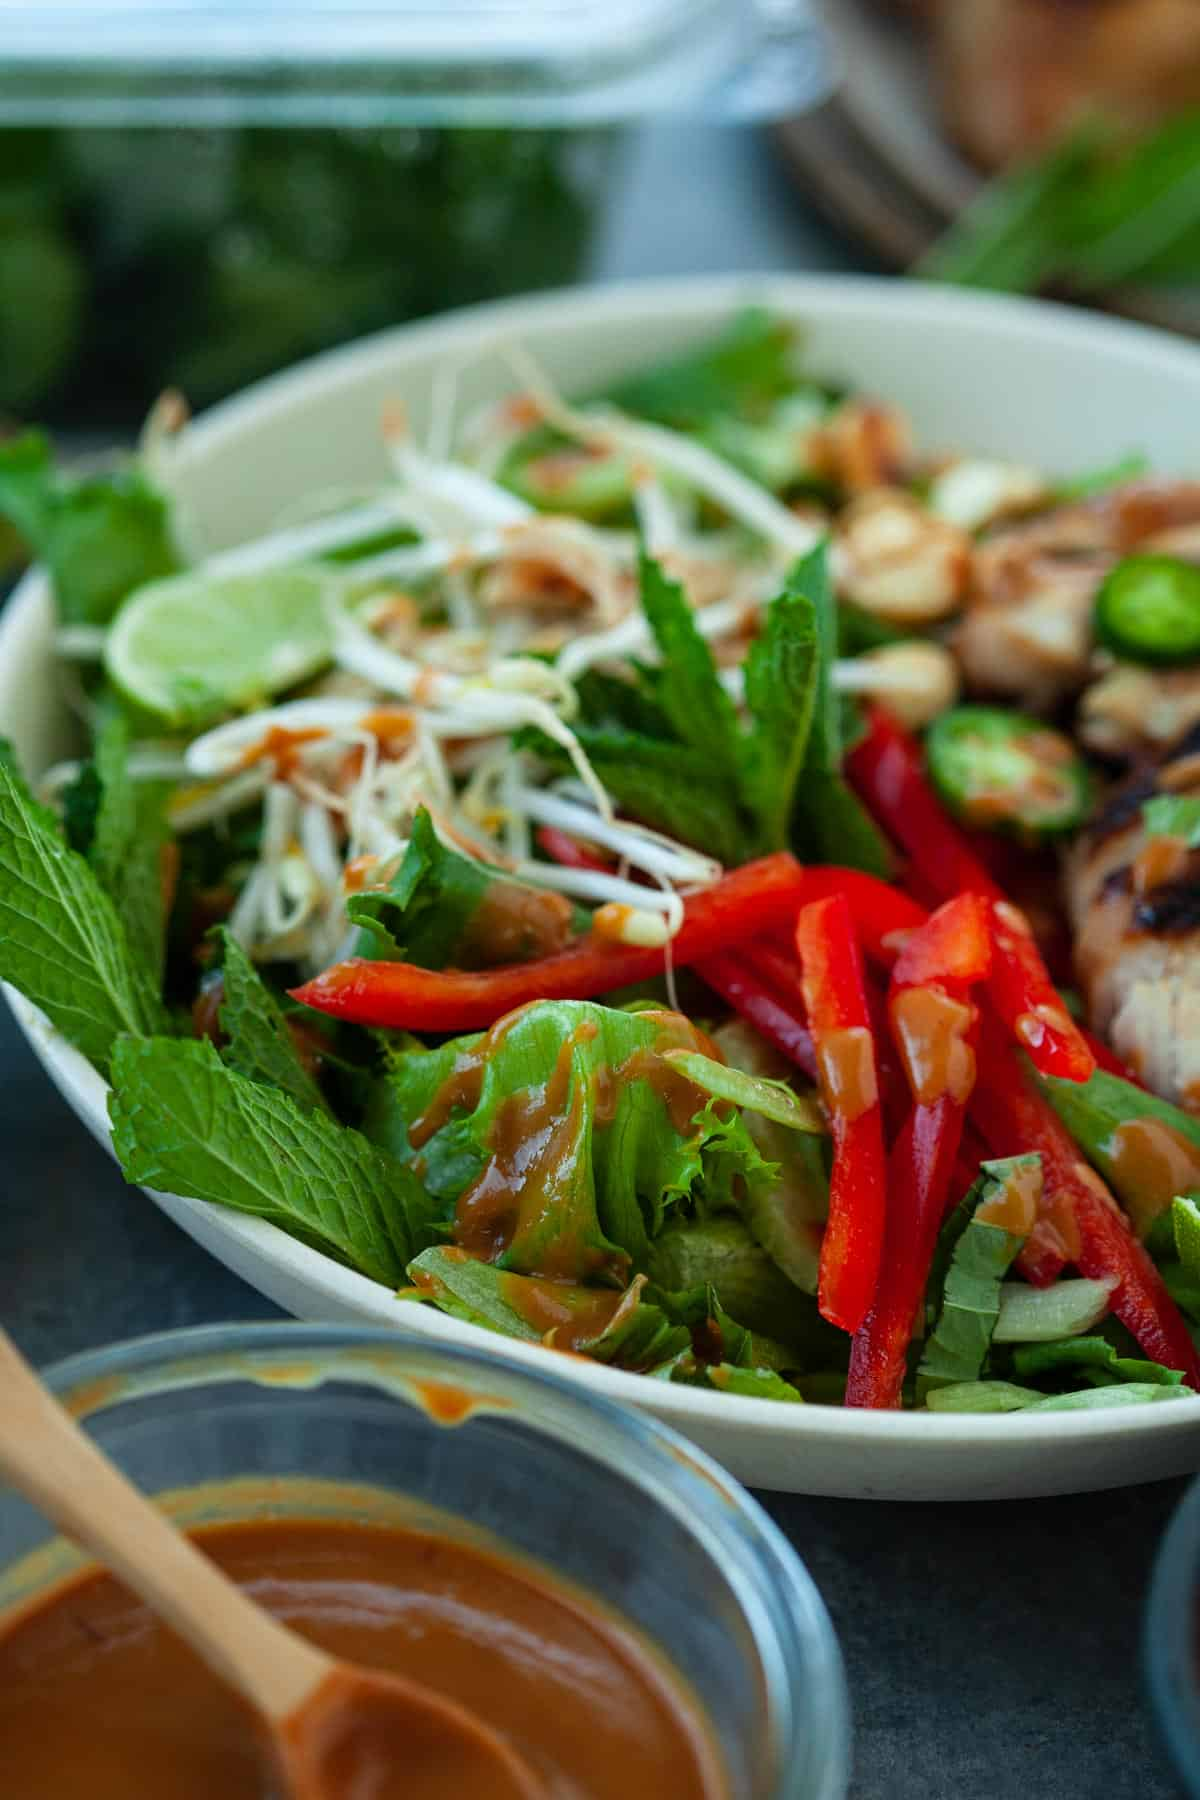 tossed thai chicken salad with fresh greens and veggies